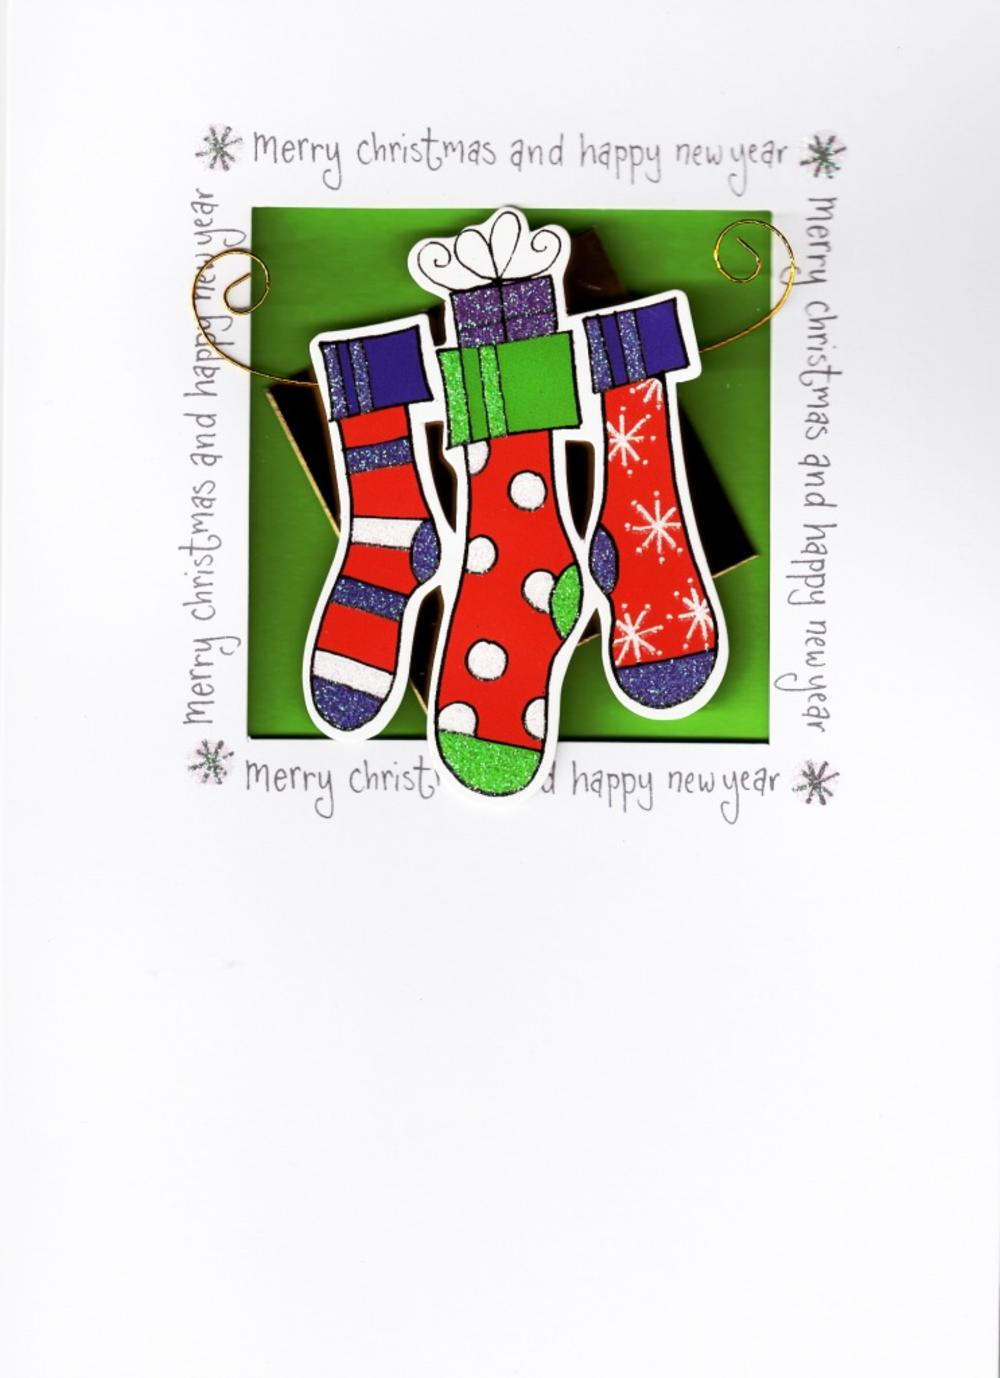 Luxury 3D Handmade Xmas Cards Christmas Stockings Card